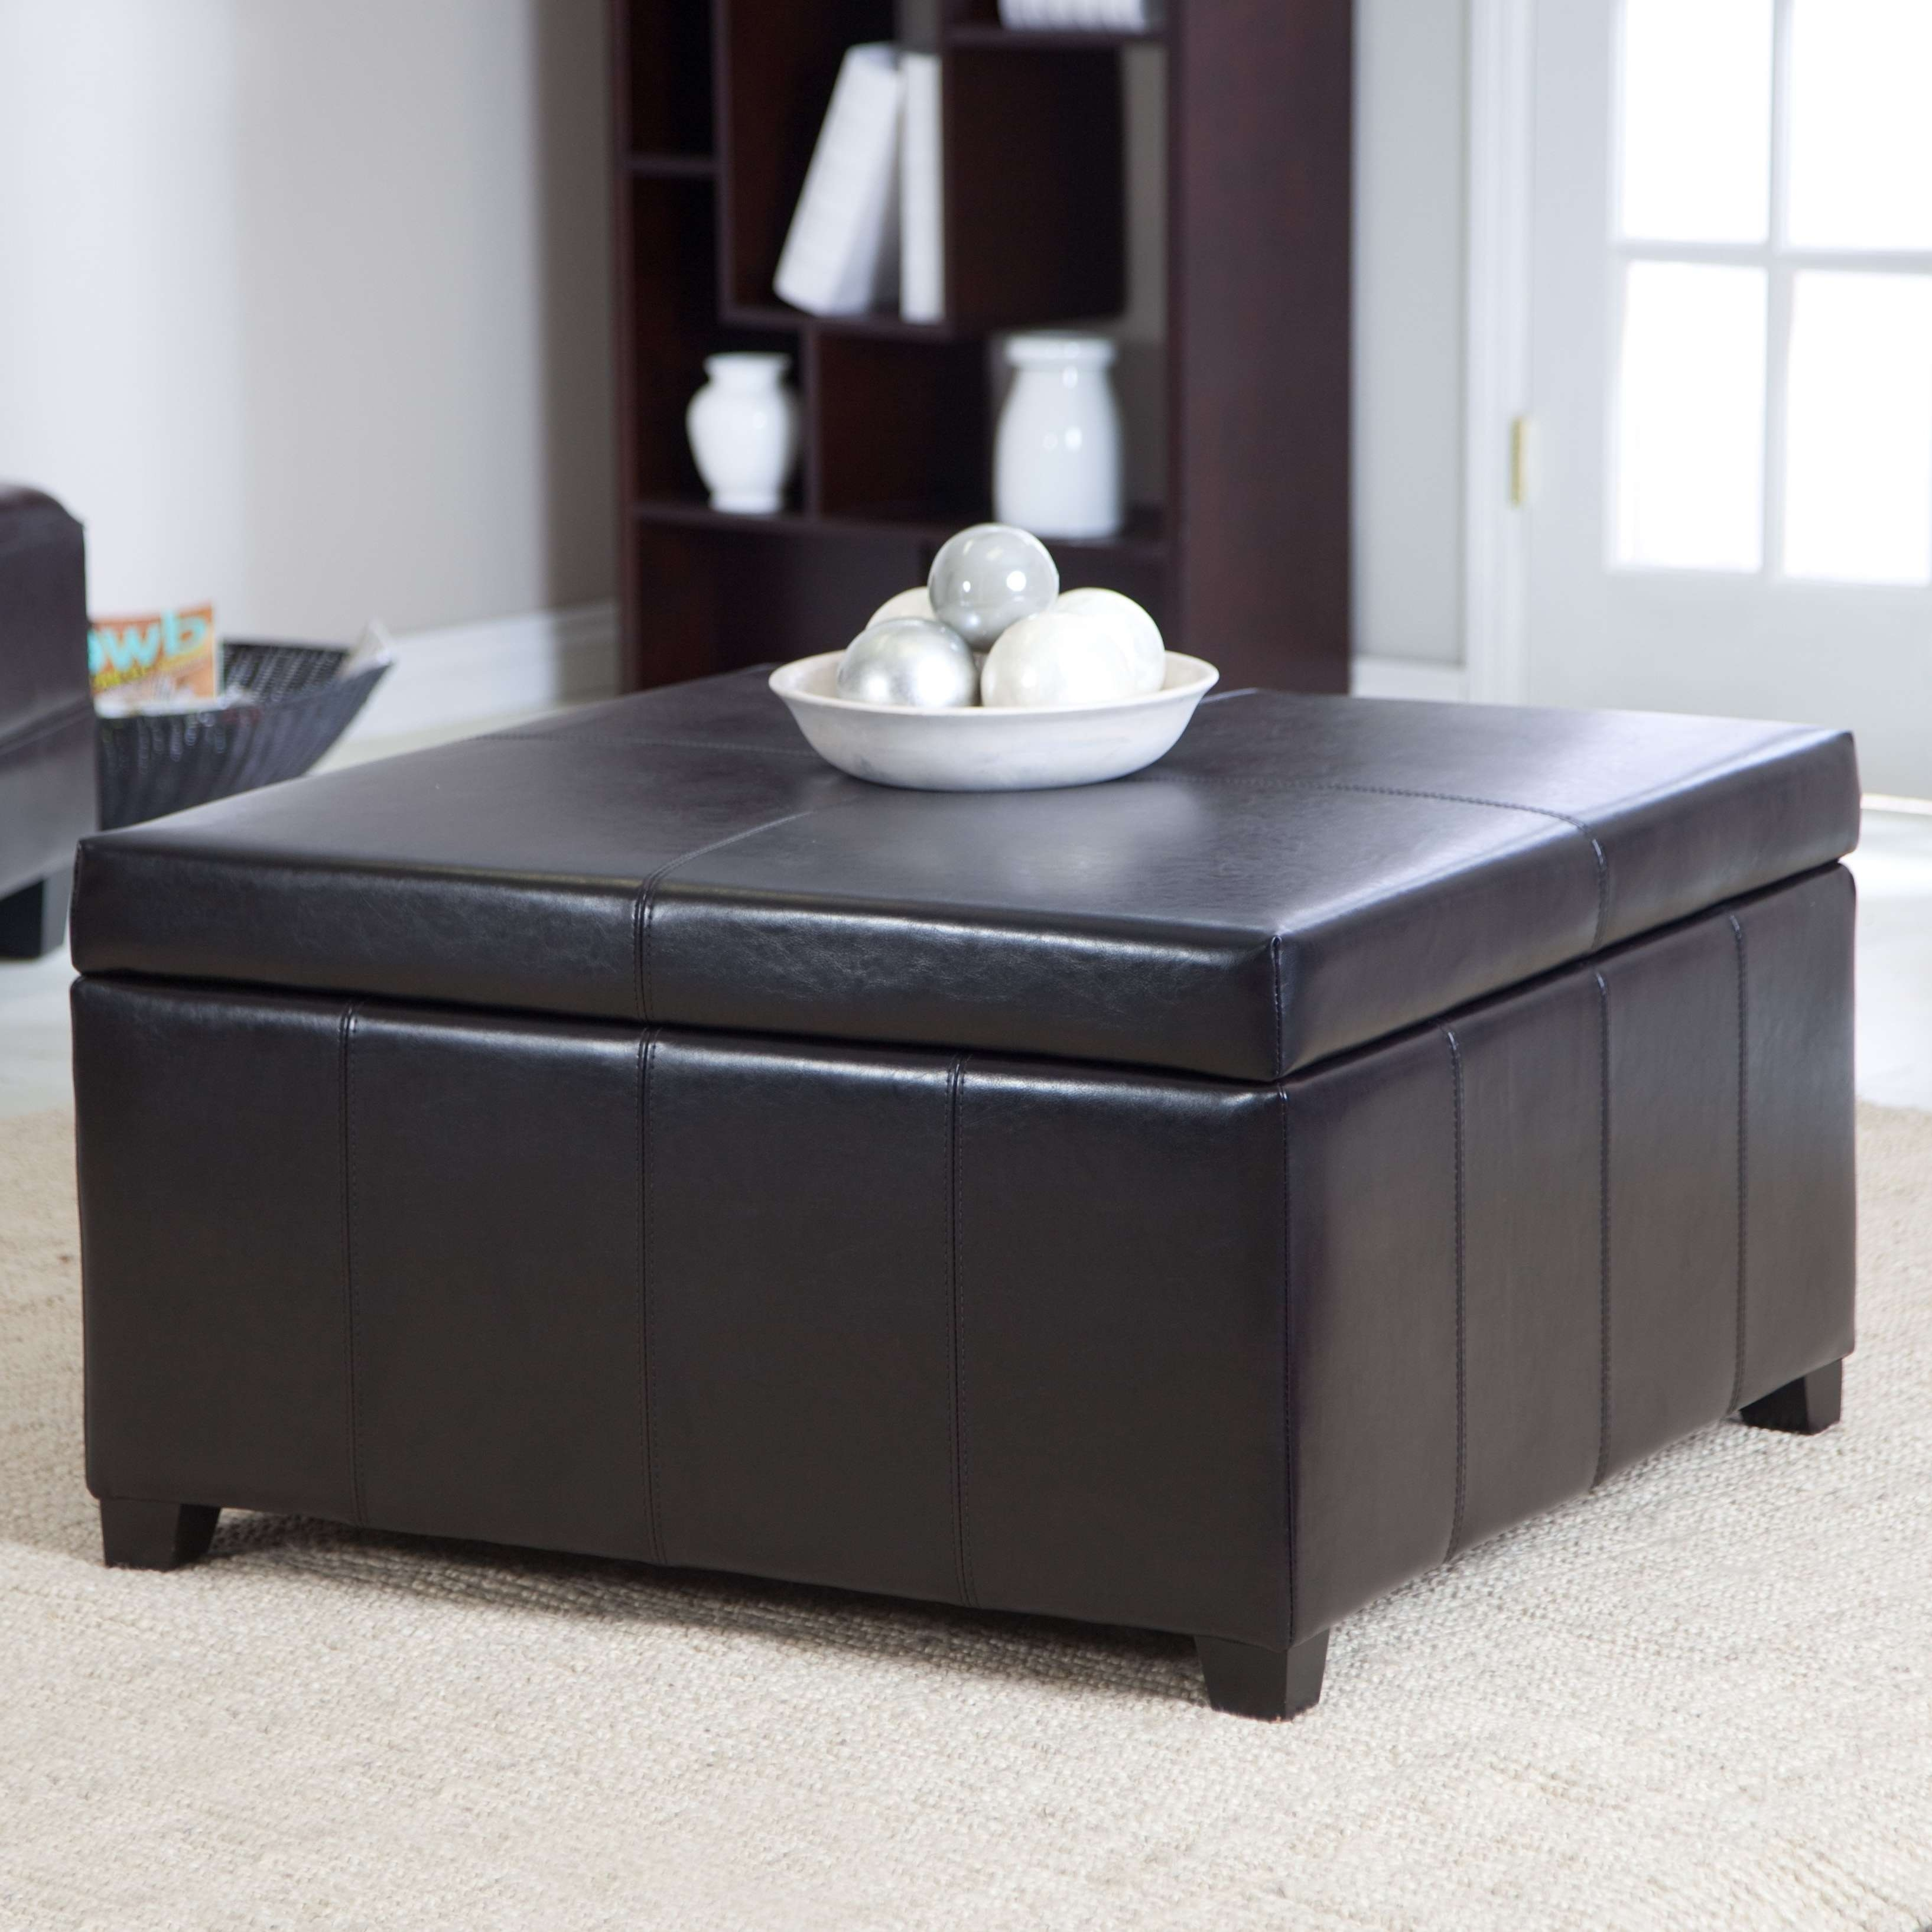 Latest Square Coffee Tables With Storage Cubes In Simple Square Ottoman Coffee Table With Storage With Latest Home (View 7 of 20)